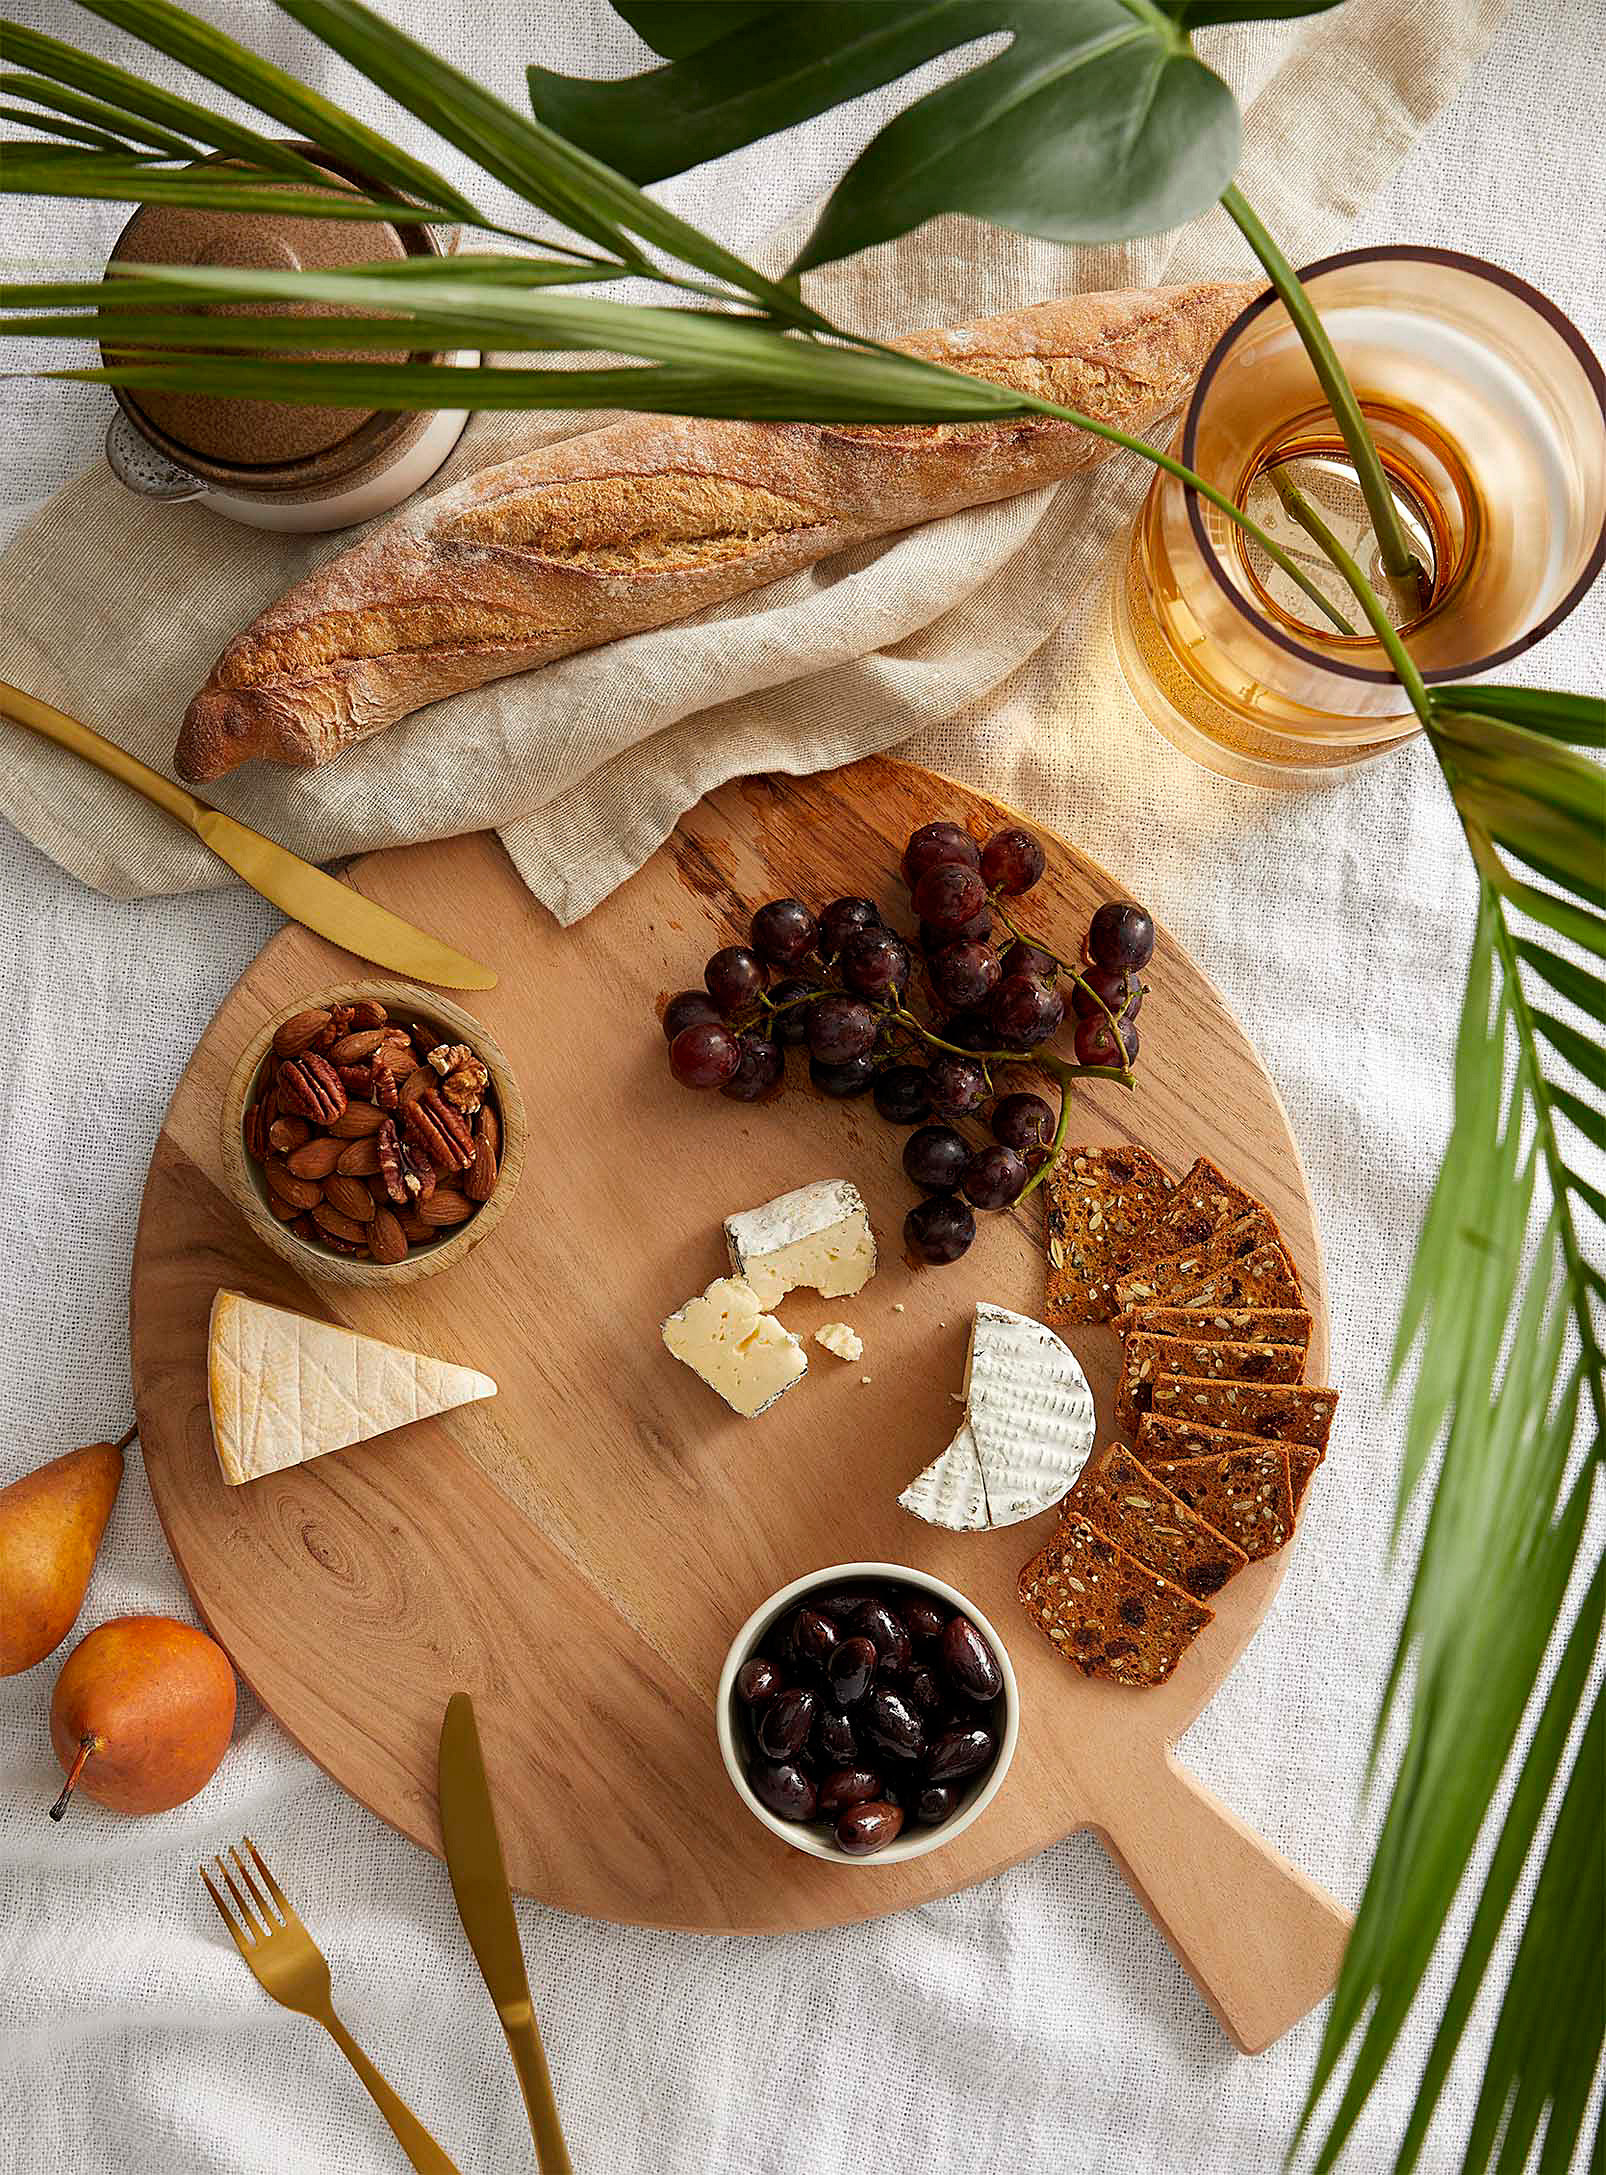 A round wooden tray with cheese, crackers, and grapes on it